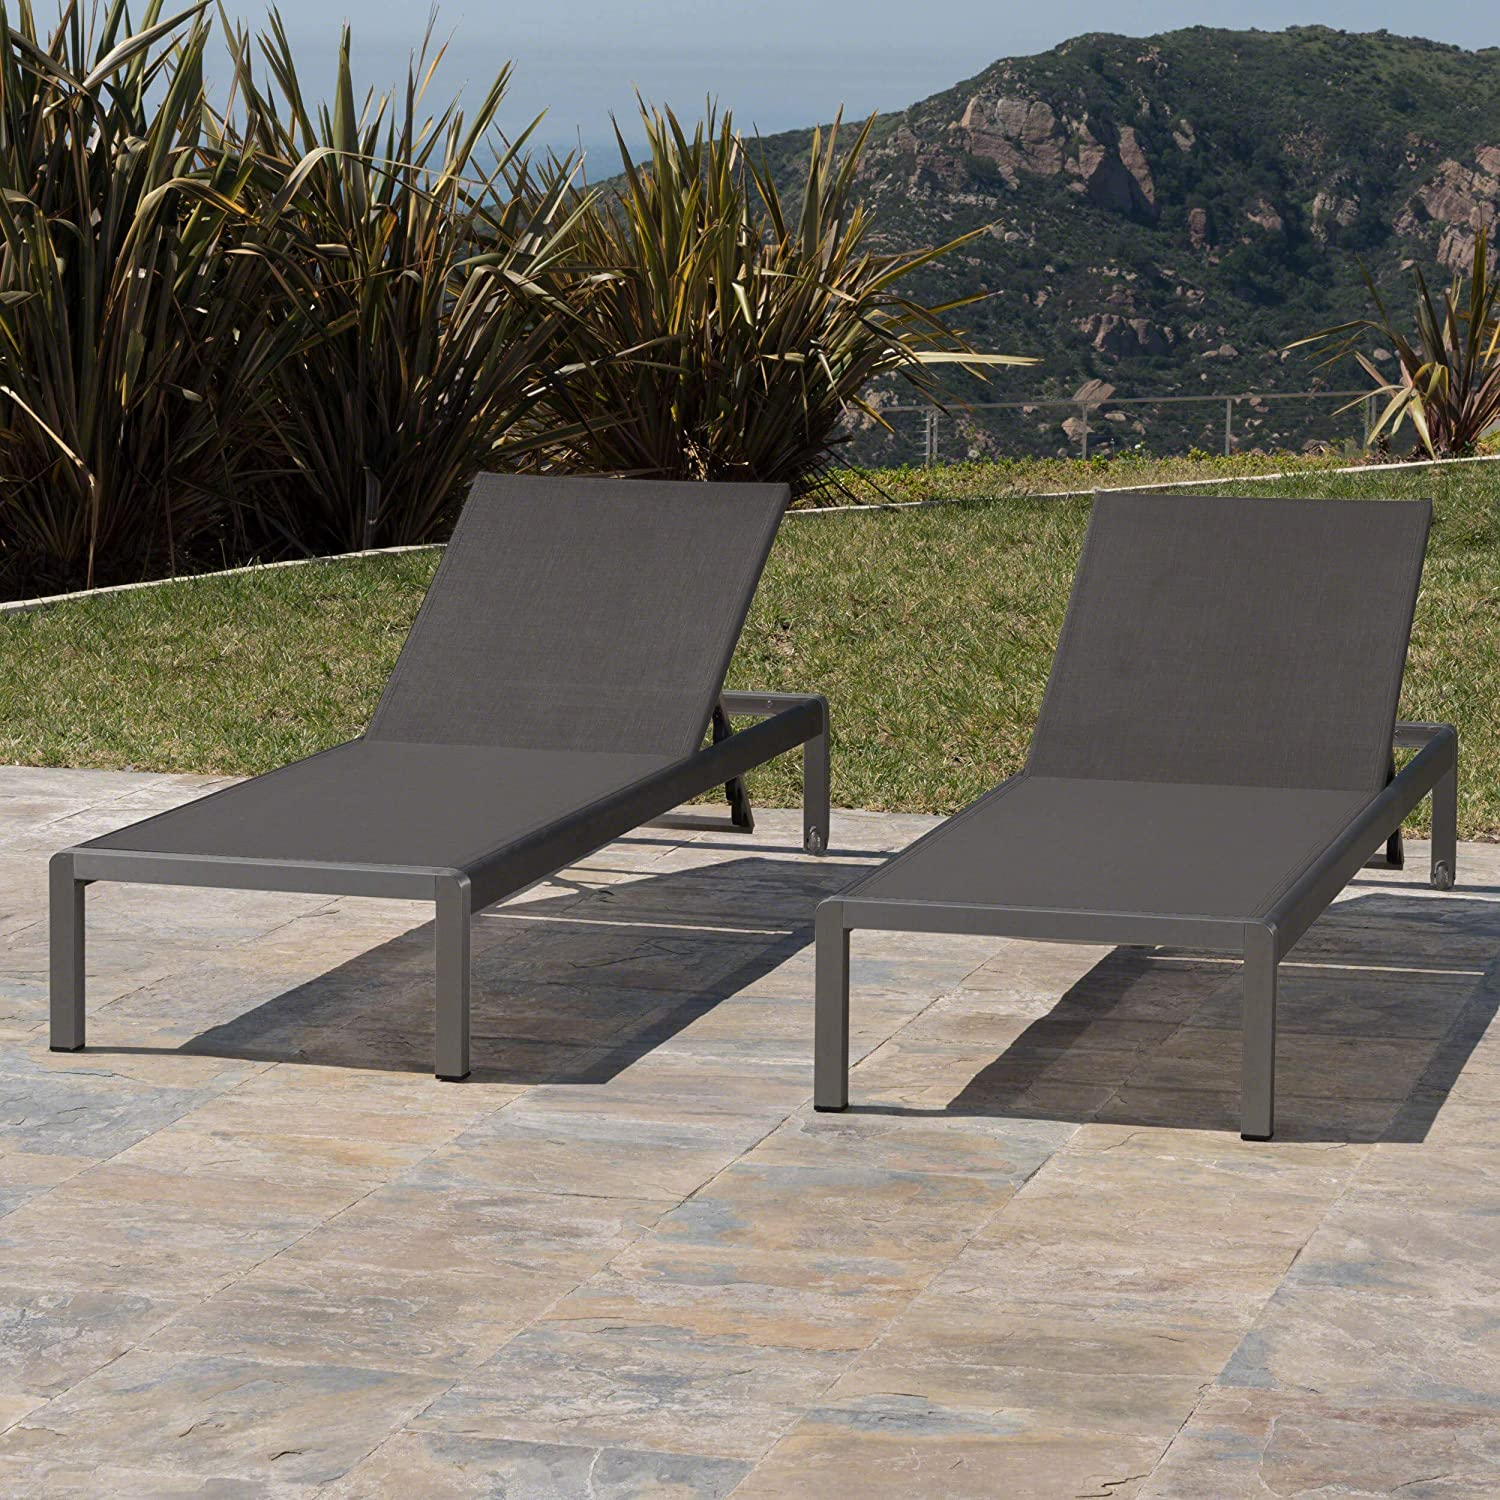 Christopher Knight Home Cape Coral Outdoor Aluminum Chaise Lounges with Mesh Seat, 2-Pcs Set, Grey / Dark Grey : Garden & Outdoor